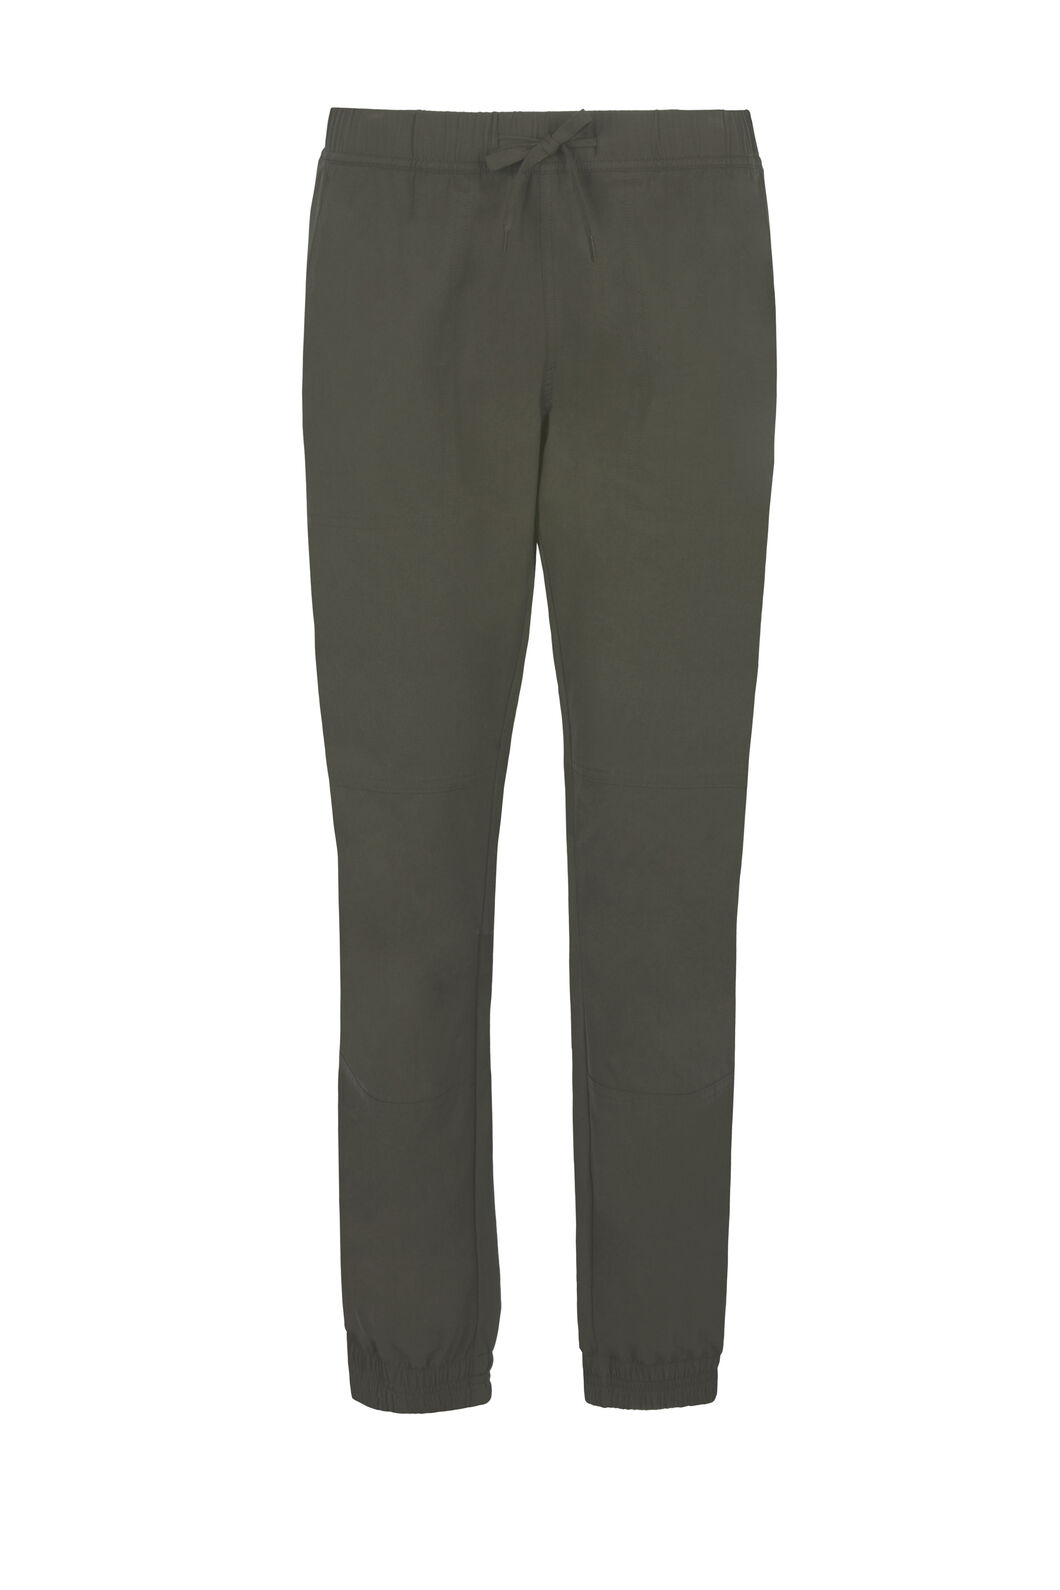 Macpac Casey Pant - Women's, Grape Leaf, hi-res